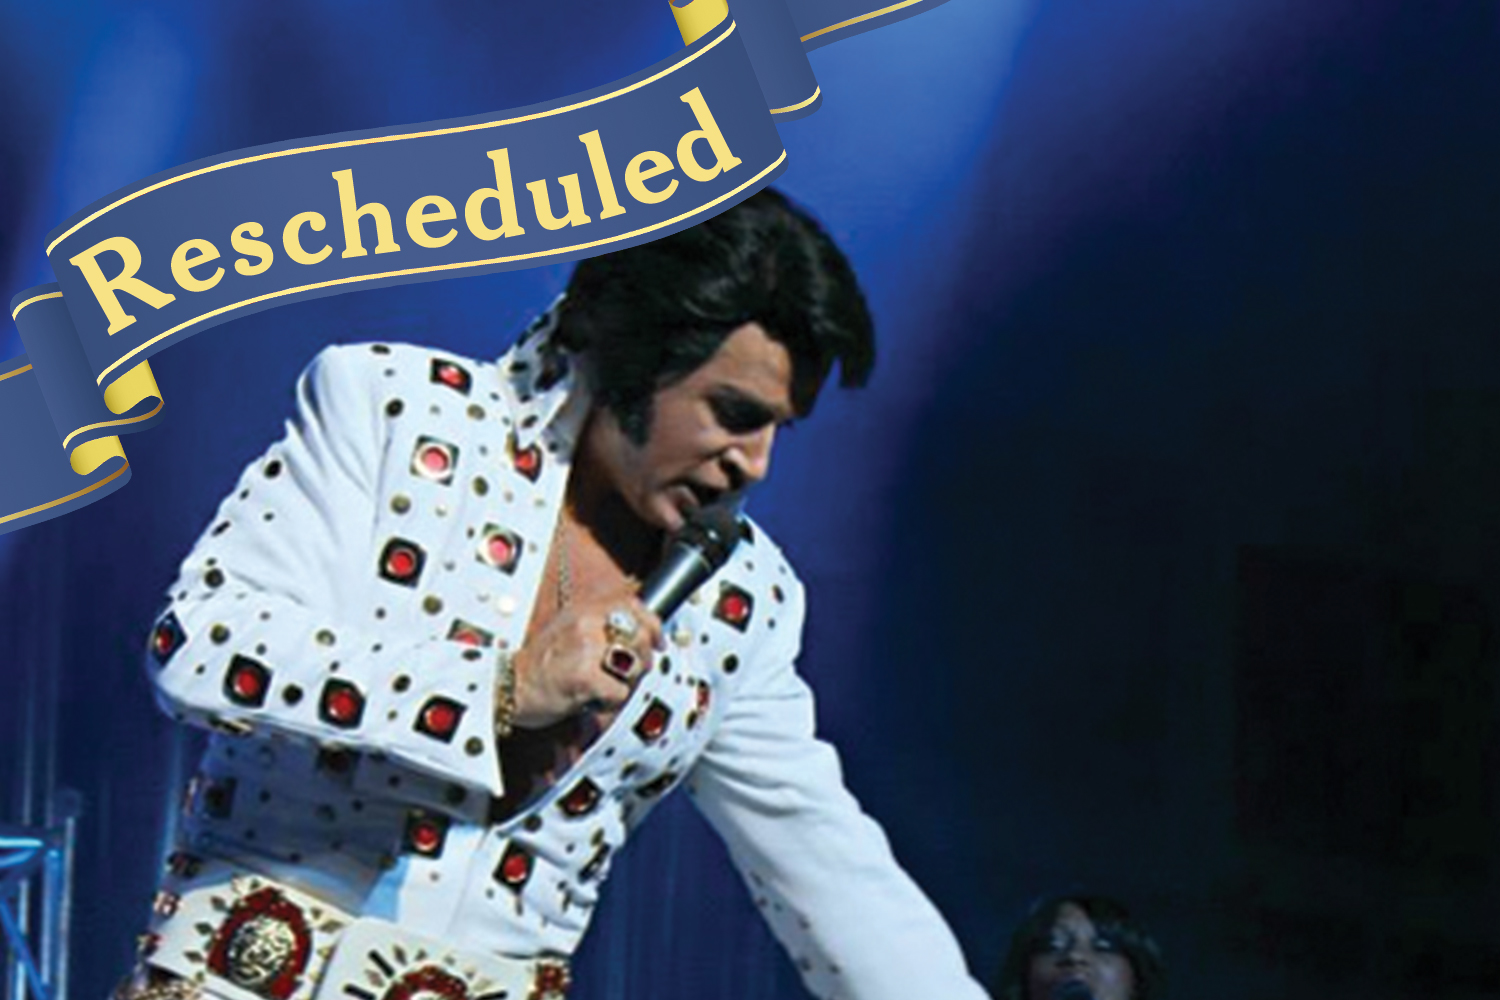 TrueVoiceOfElvis_Rescheduled.jpg